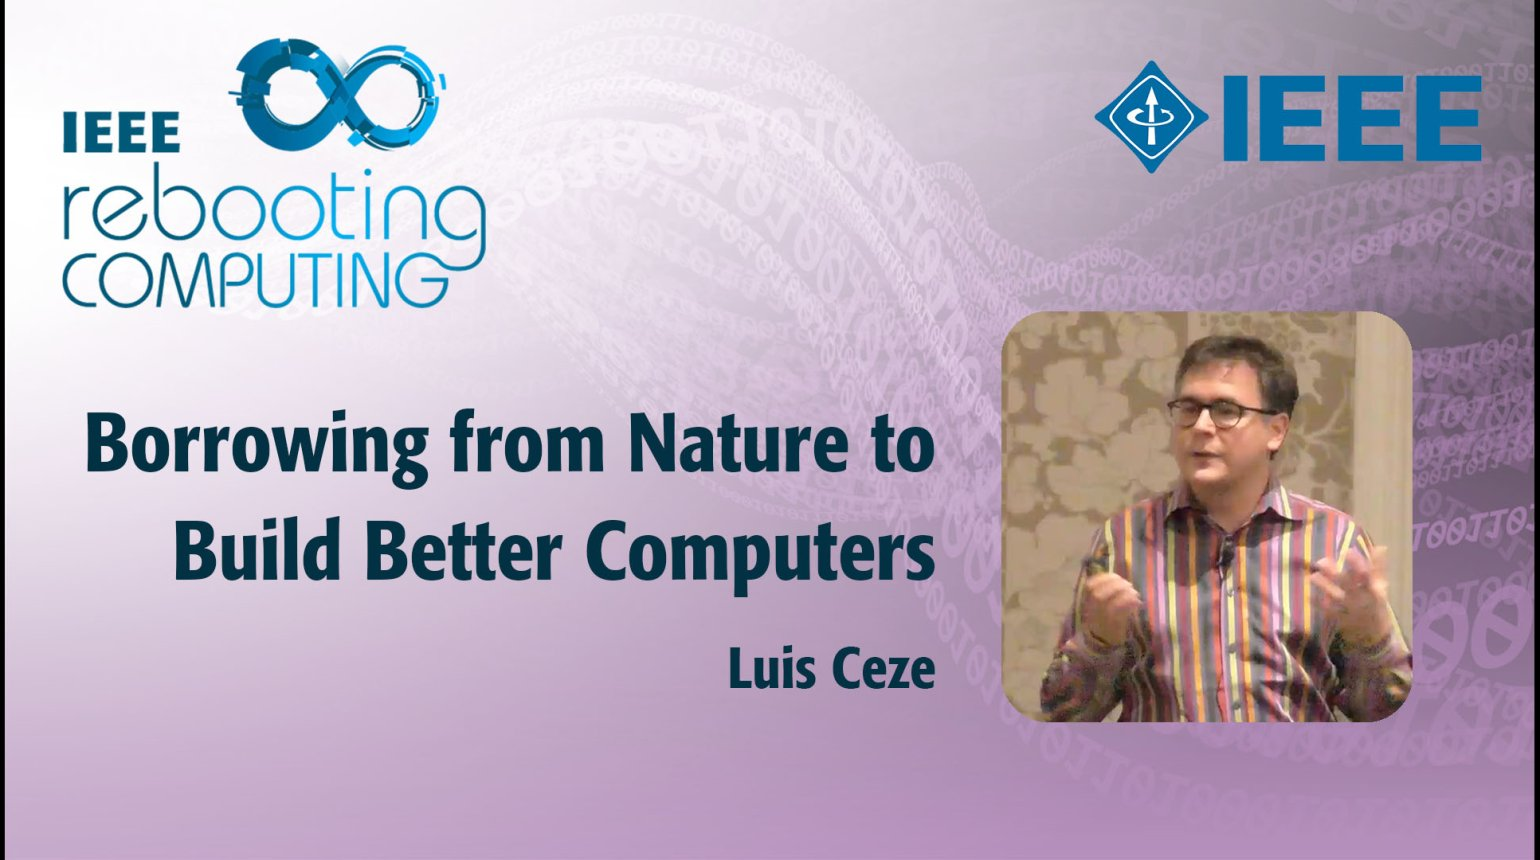 Borrowing from Nature to Build Better Computers: IEEE Rebooting Computing 2017